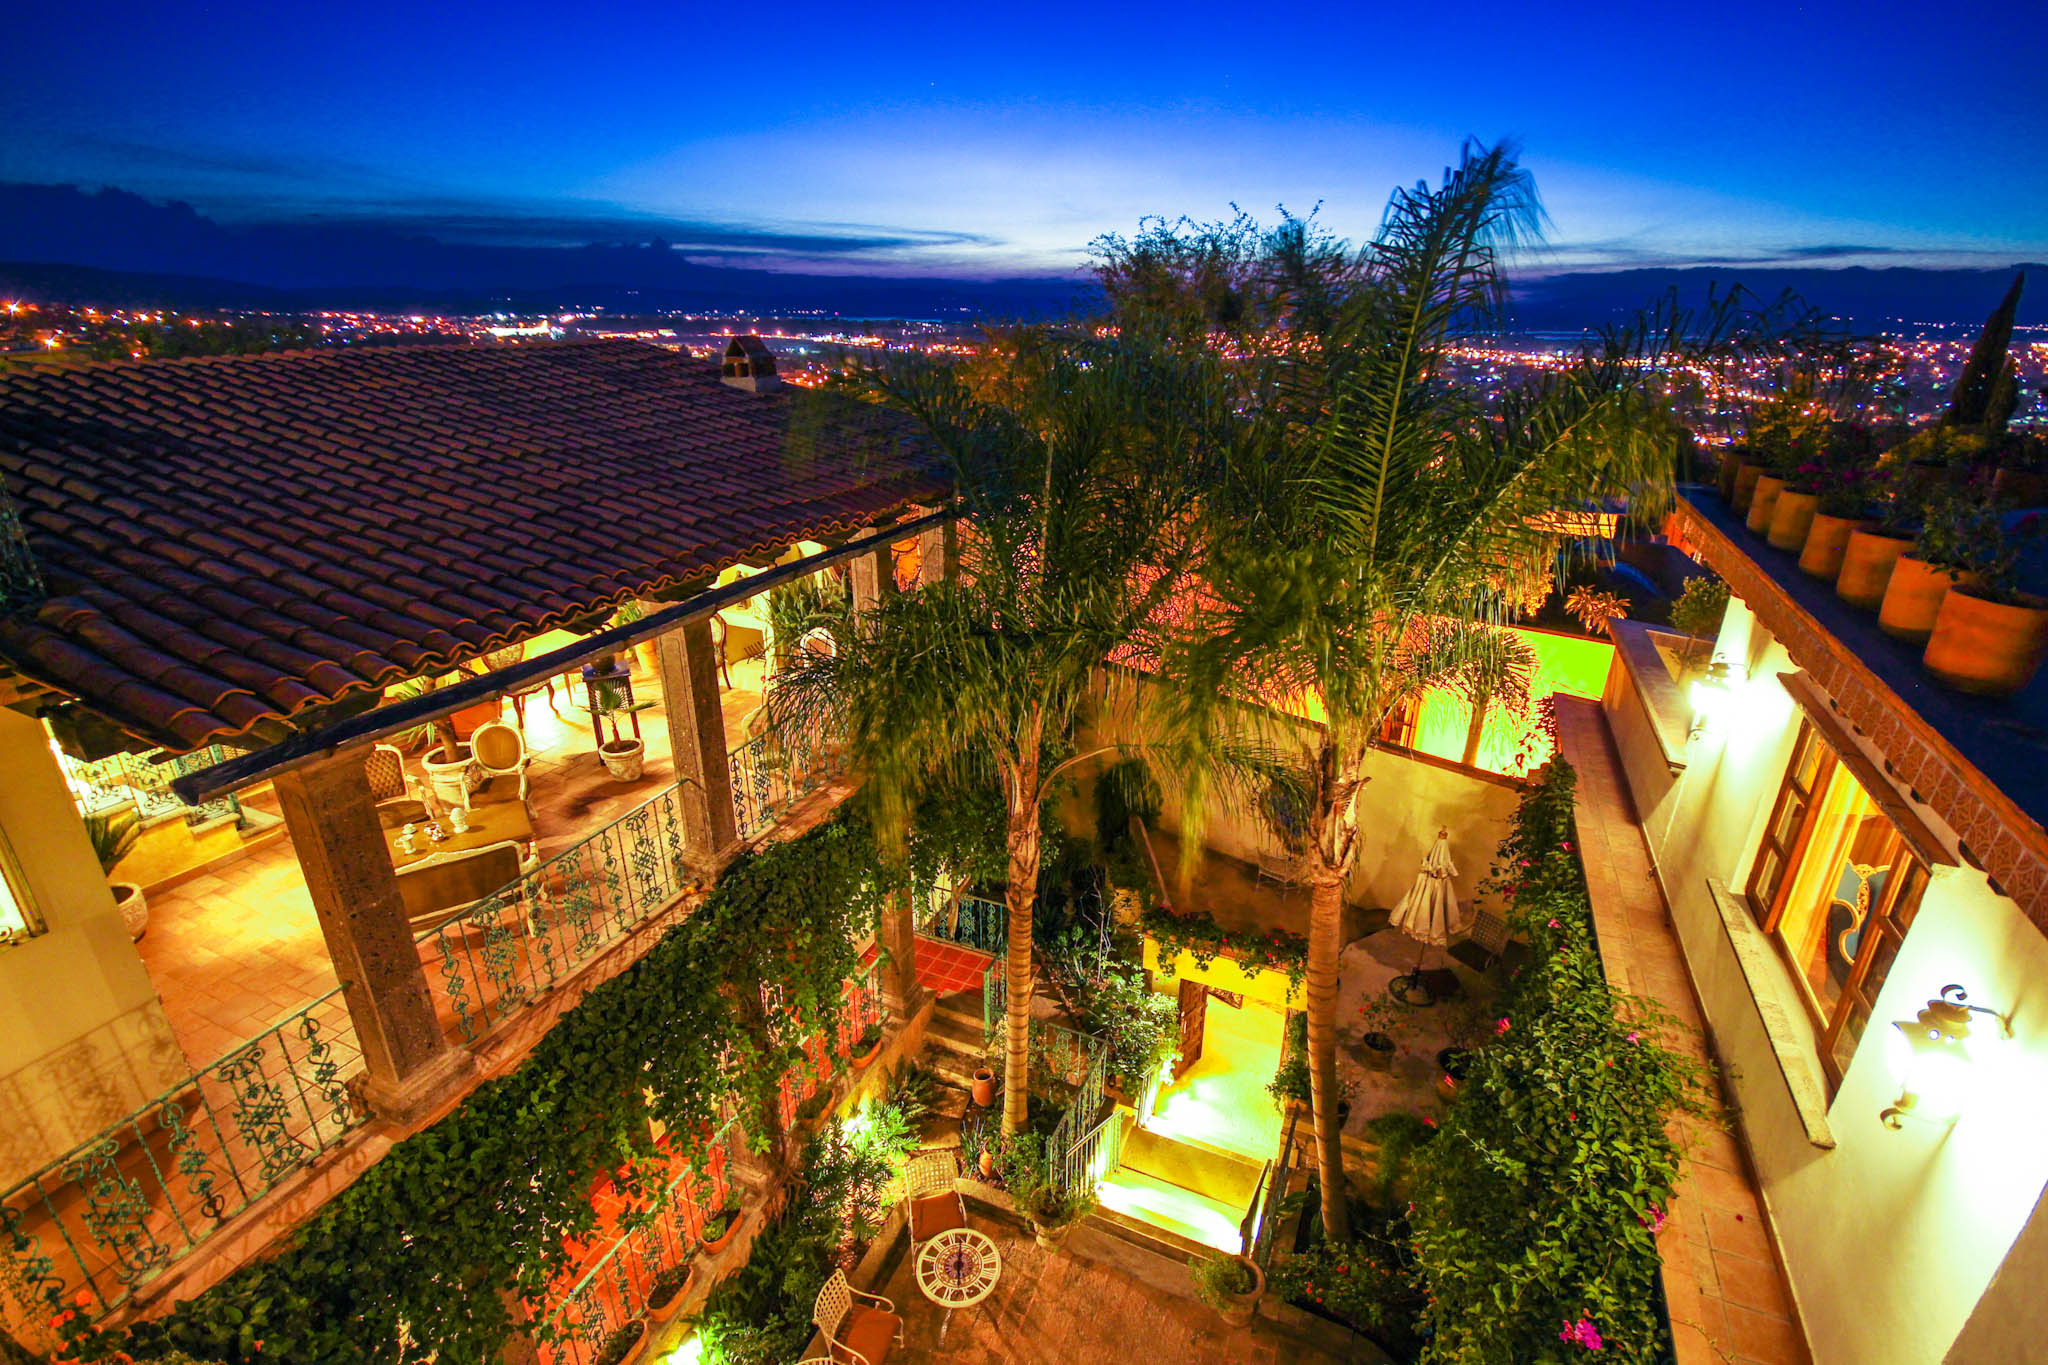 Another alt text